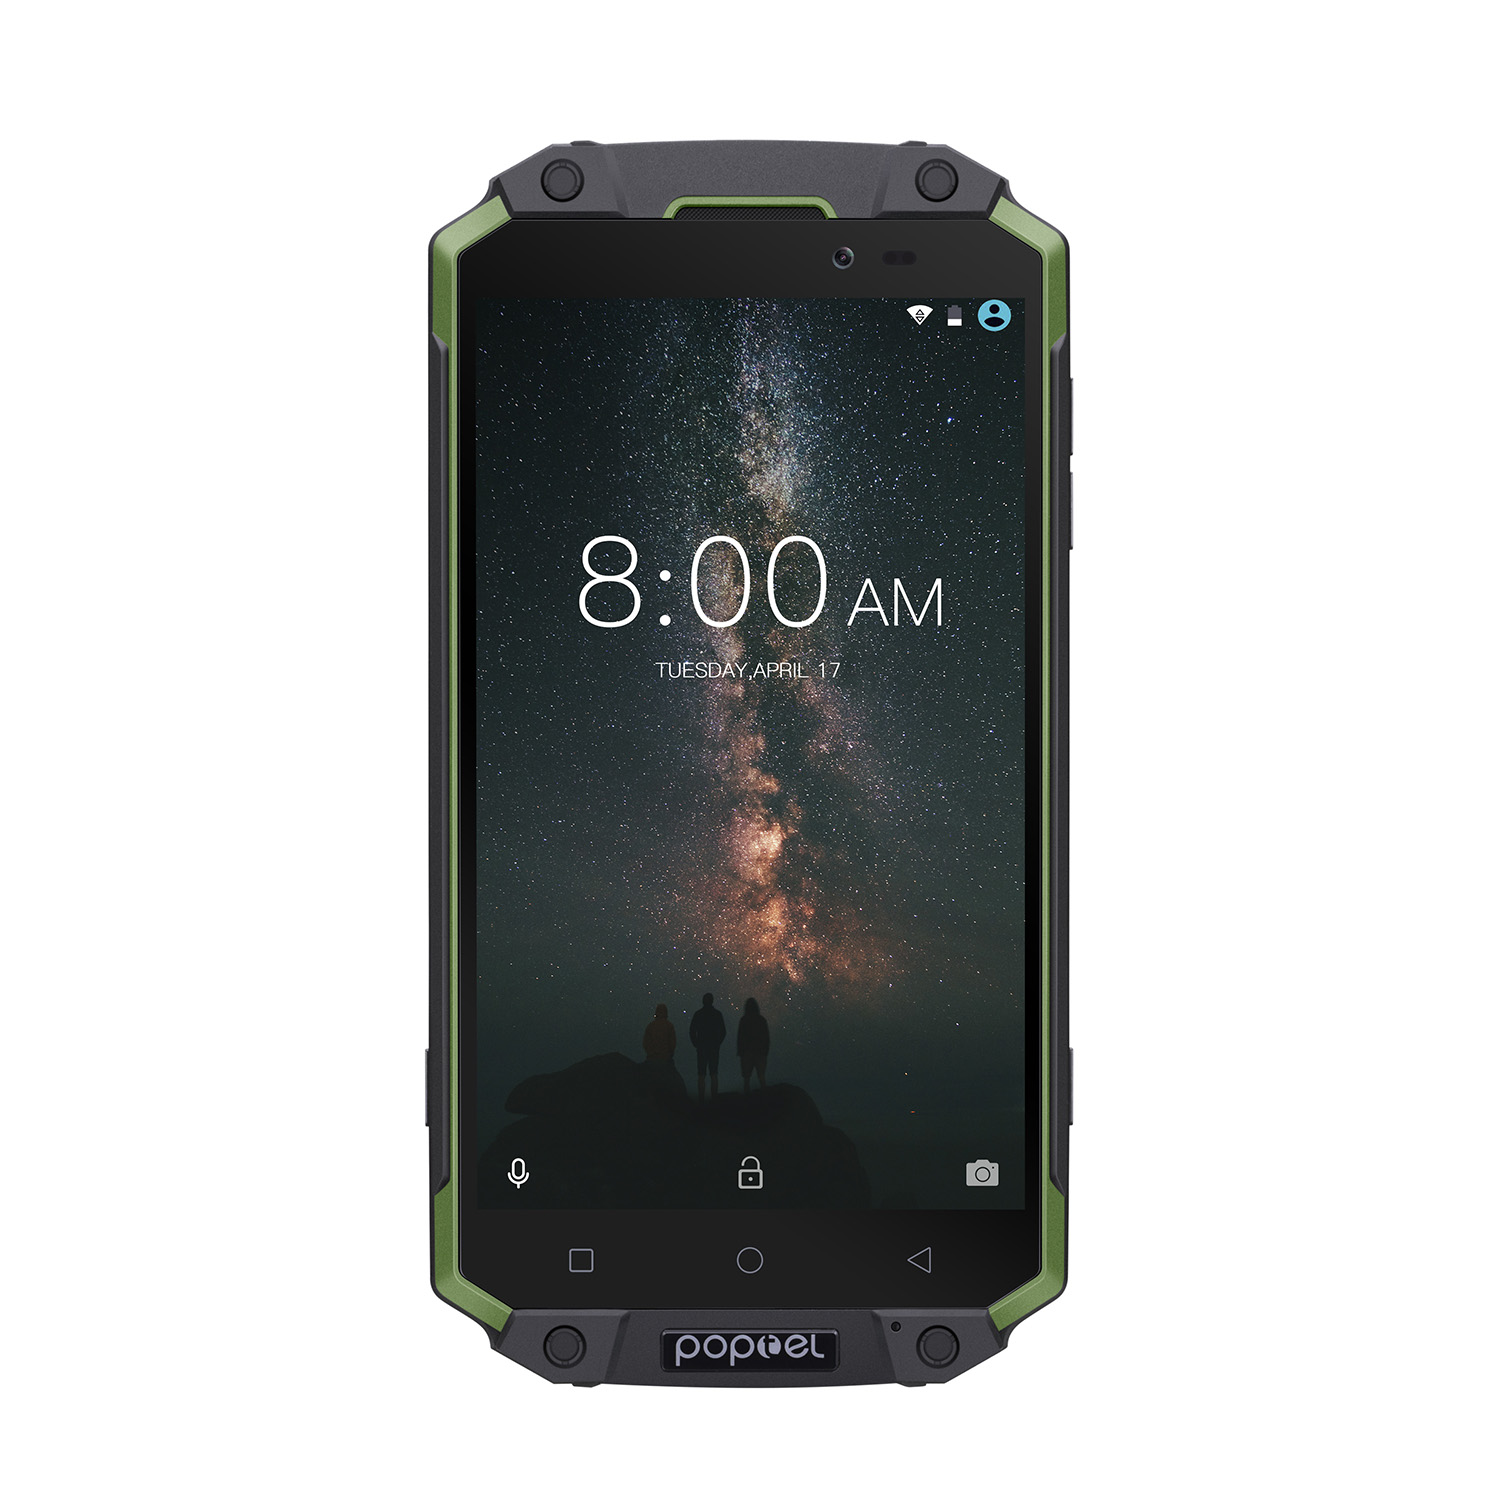 POPTEL P9000 MAX Android Phone Green- Android 7.0-4GB RAM, 5.5-Inch FHD, IP68, Dual-IMEI